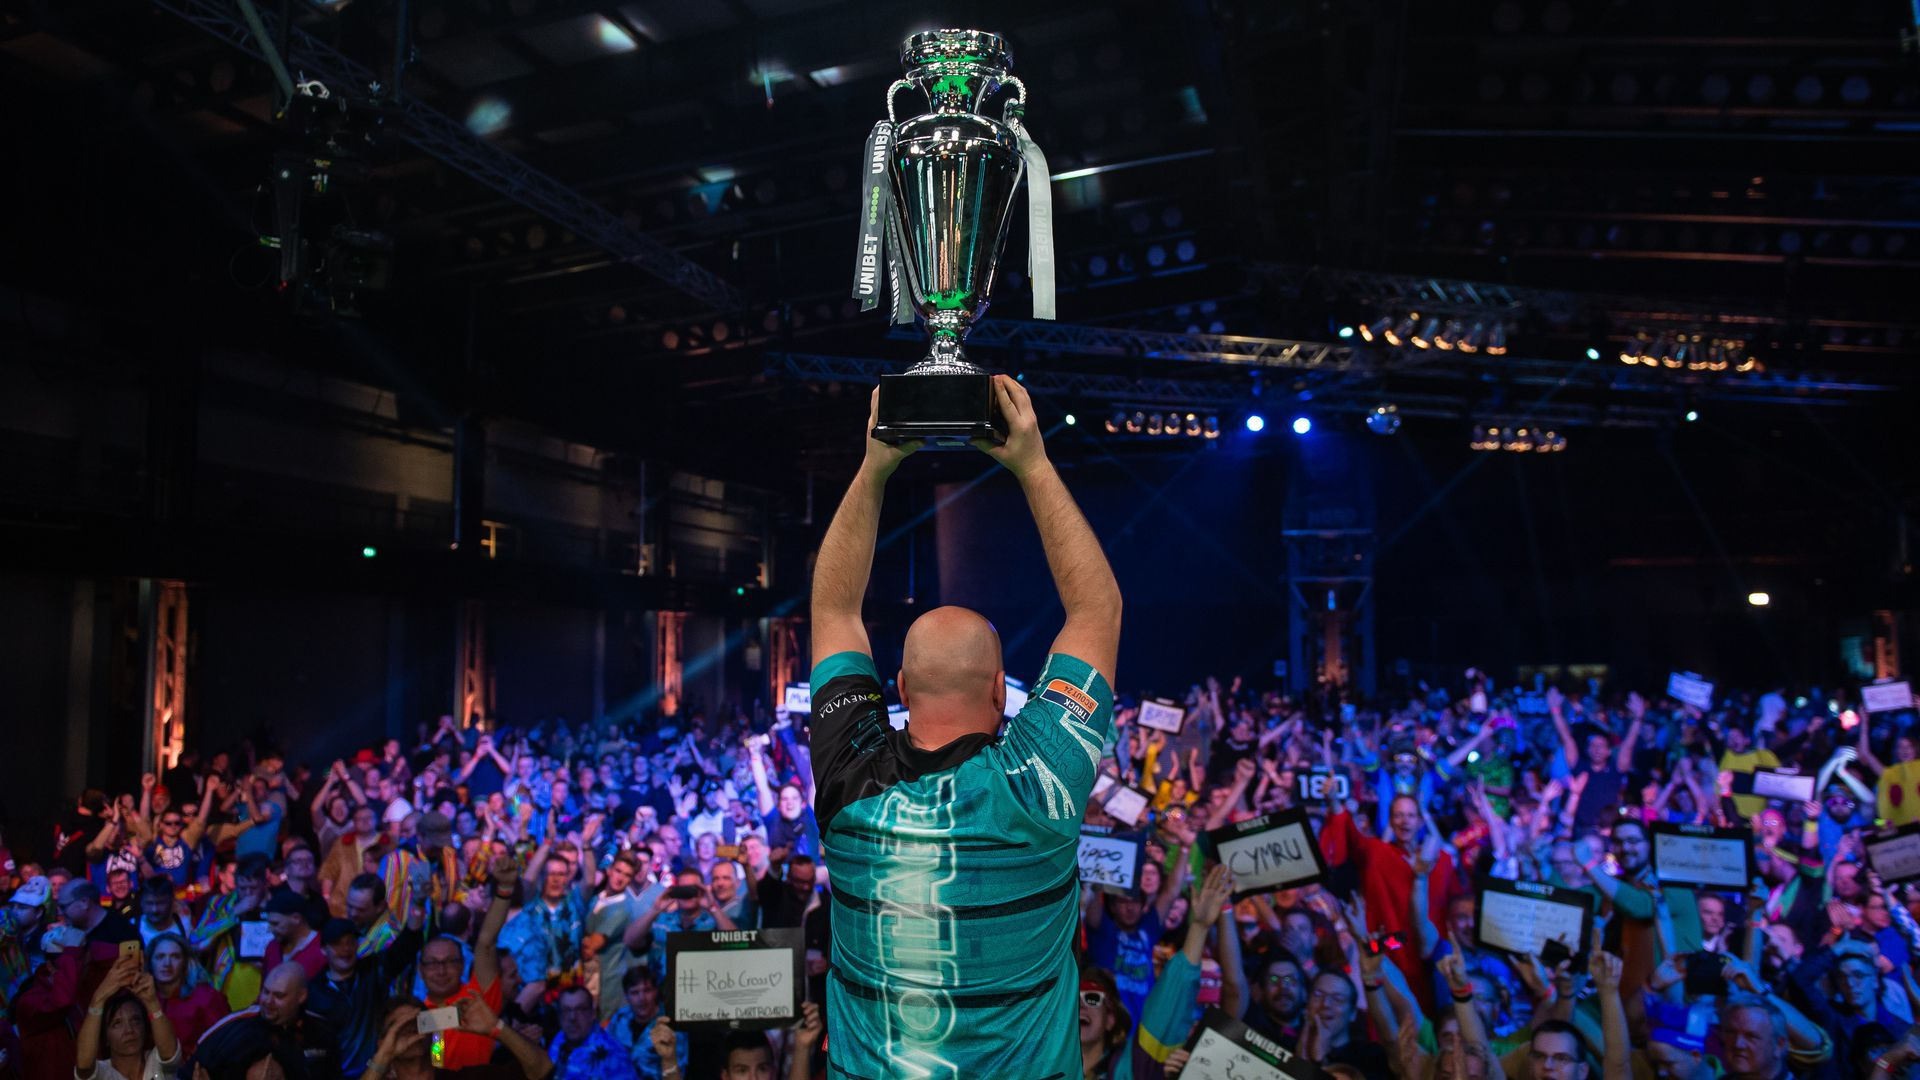 Rob Cross holding a trophy.